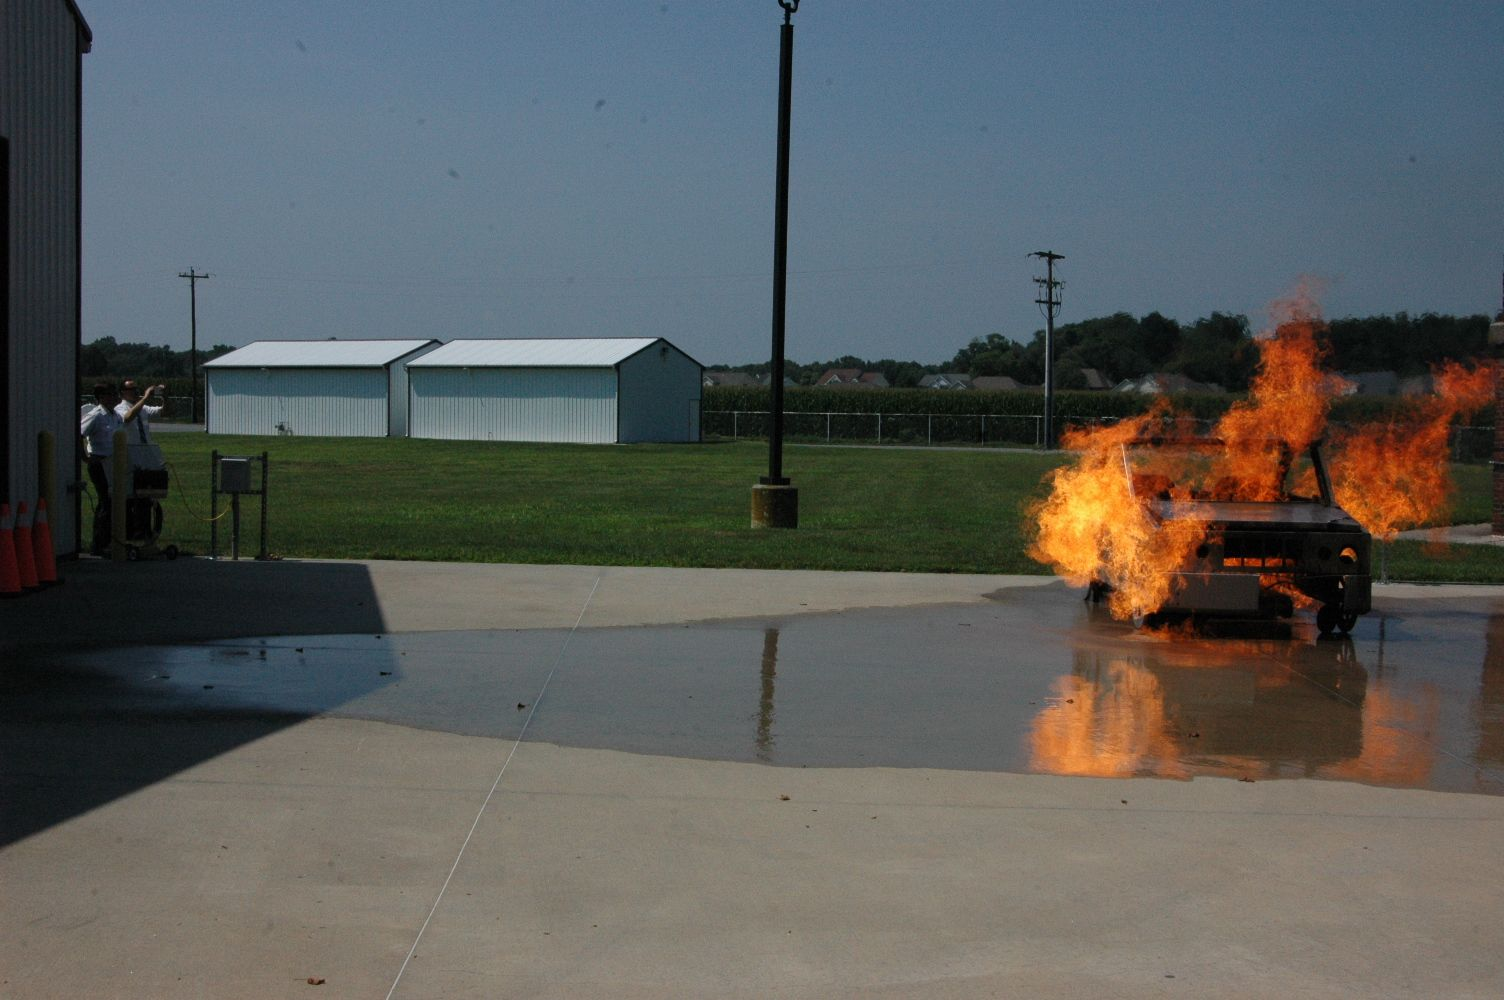 Displaying today, the Drager Automobile Fire Prop